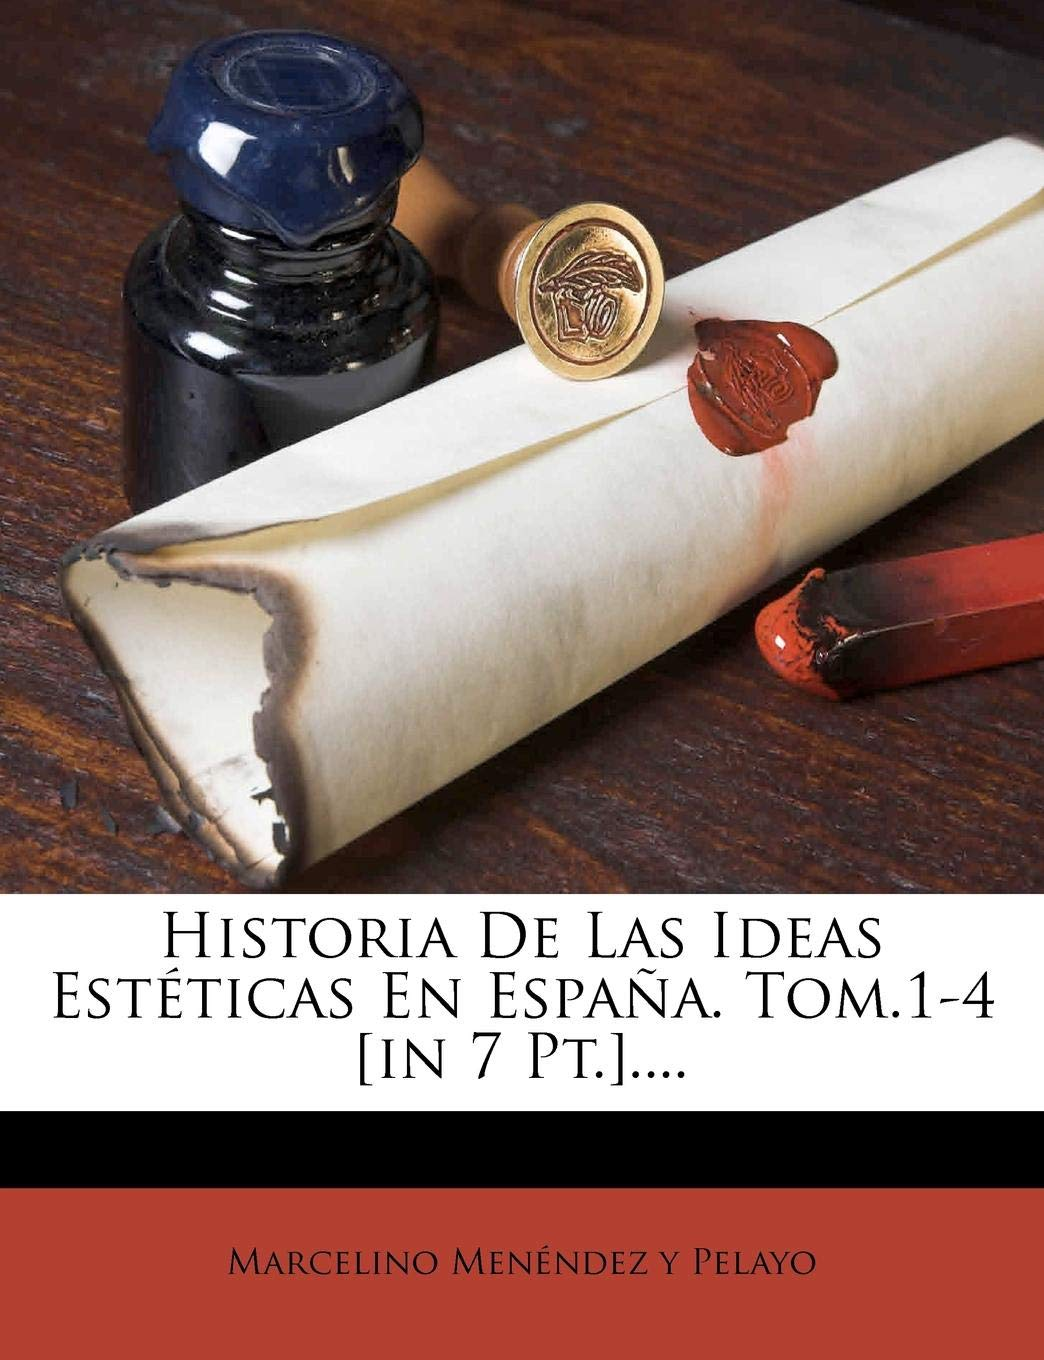 Historia de Las Ideas Esteticas En Espana. Tom.1-4 In 7 PT ...